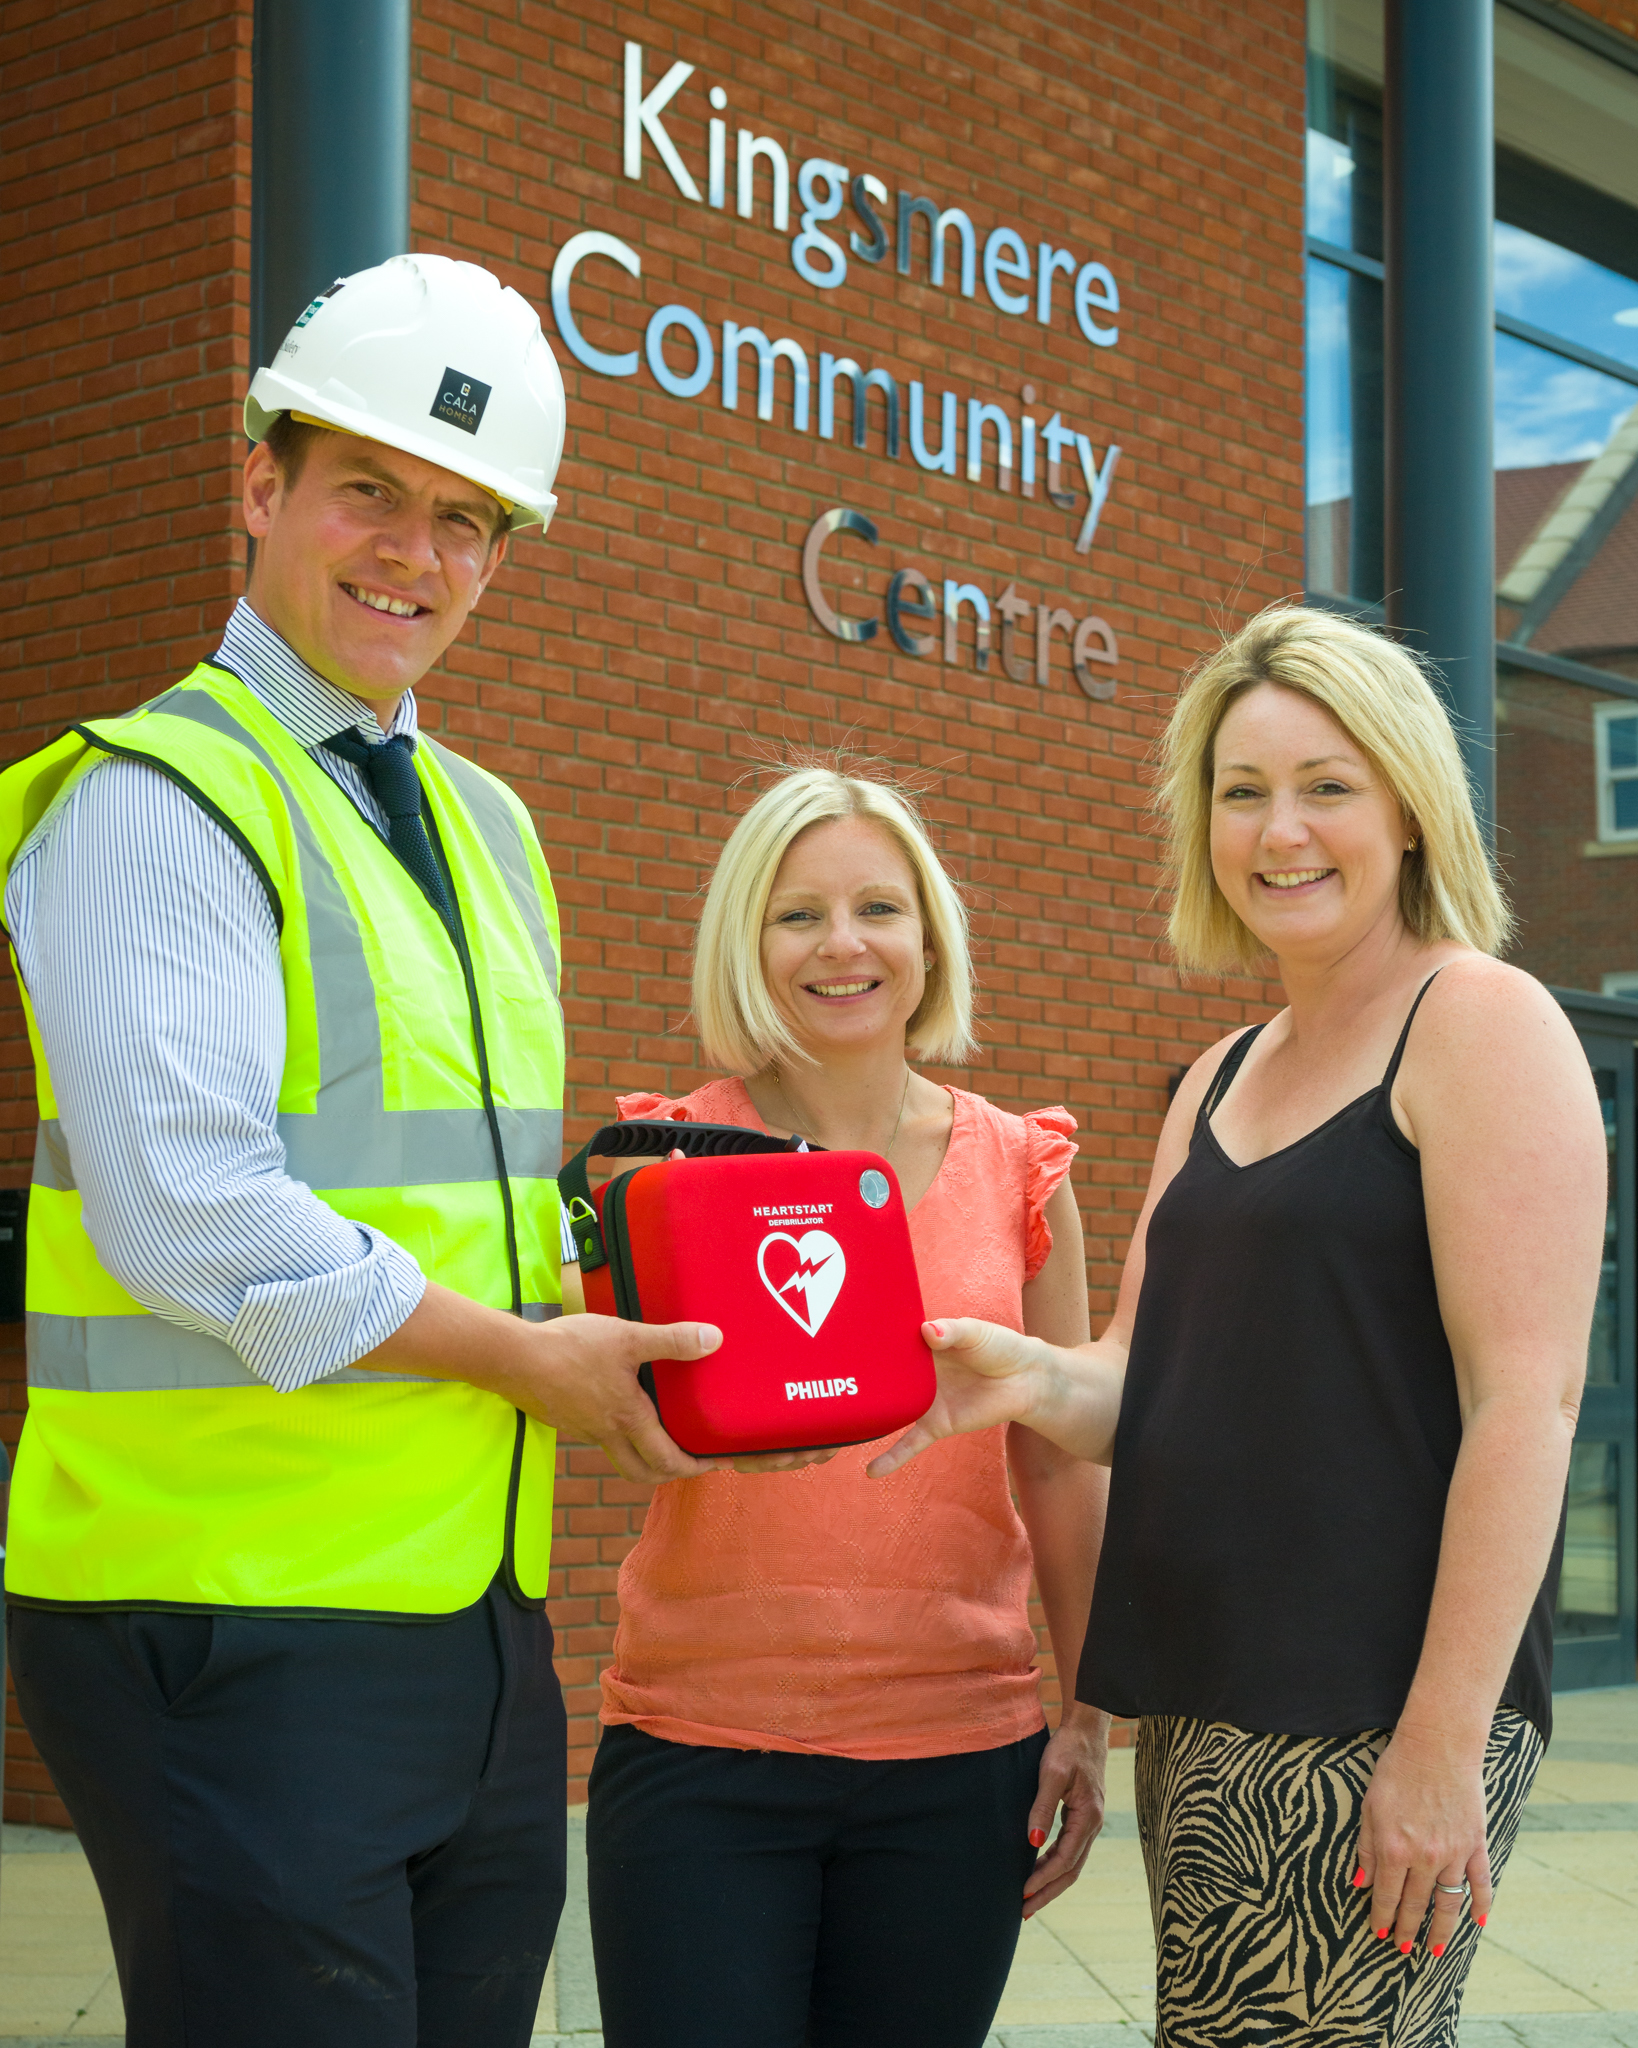 Community centre is off to good start